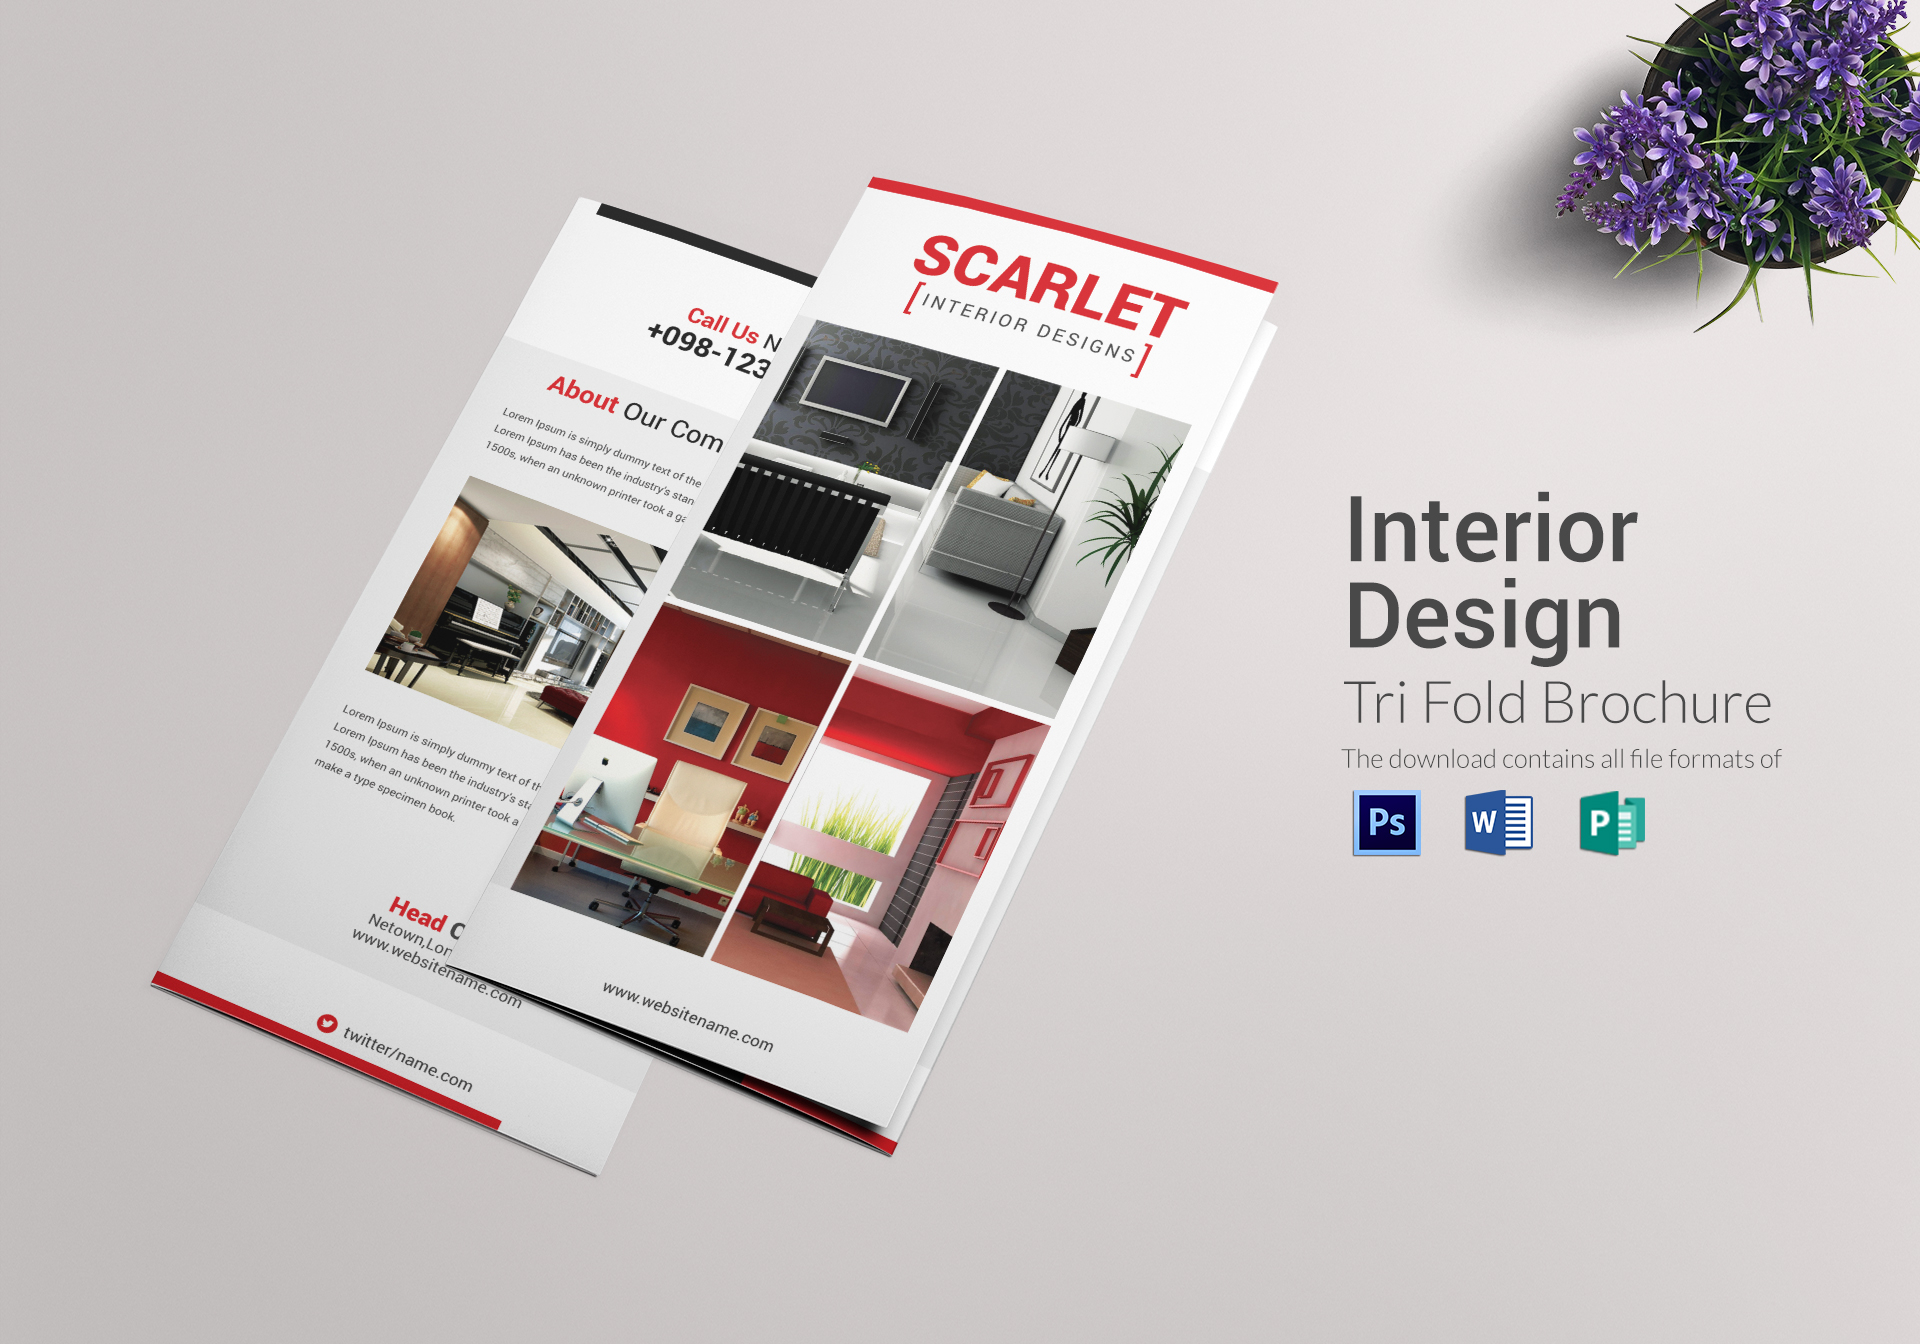 trifold interior design brochure template in psd word publisher rh besttemplates com brochure template interior design interior brochure design ideas